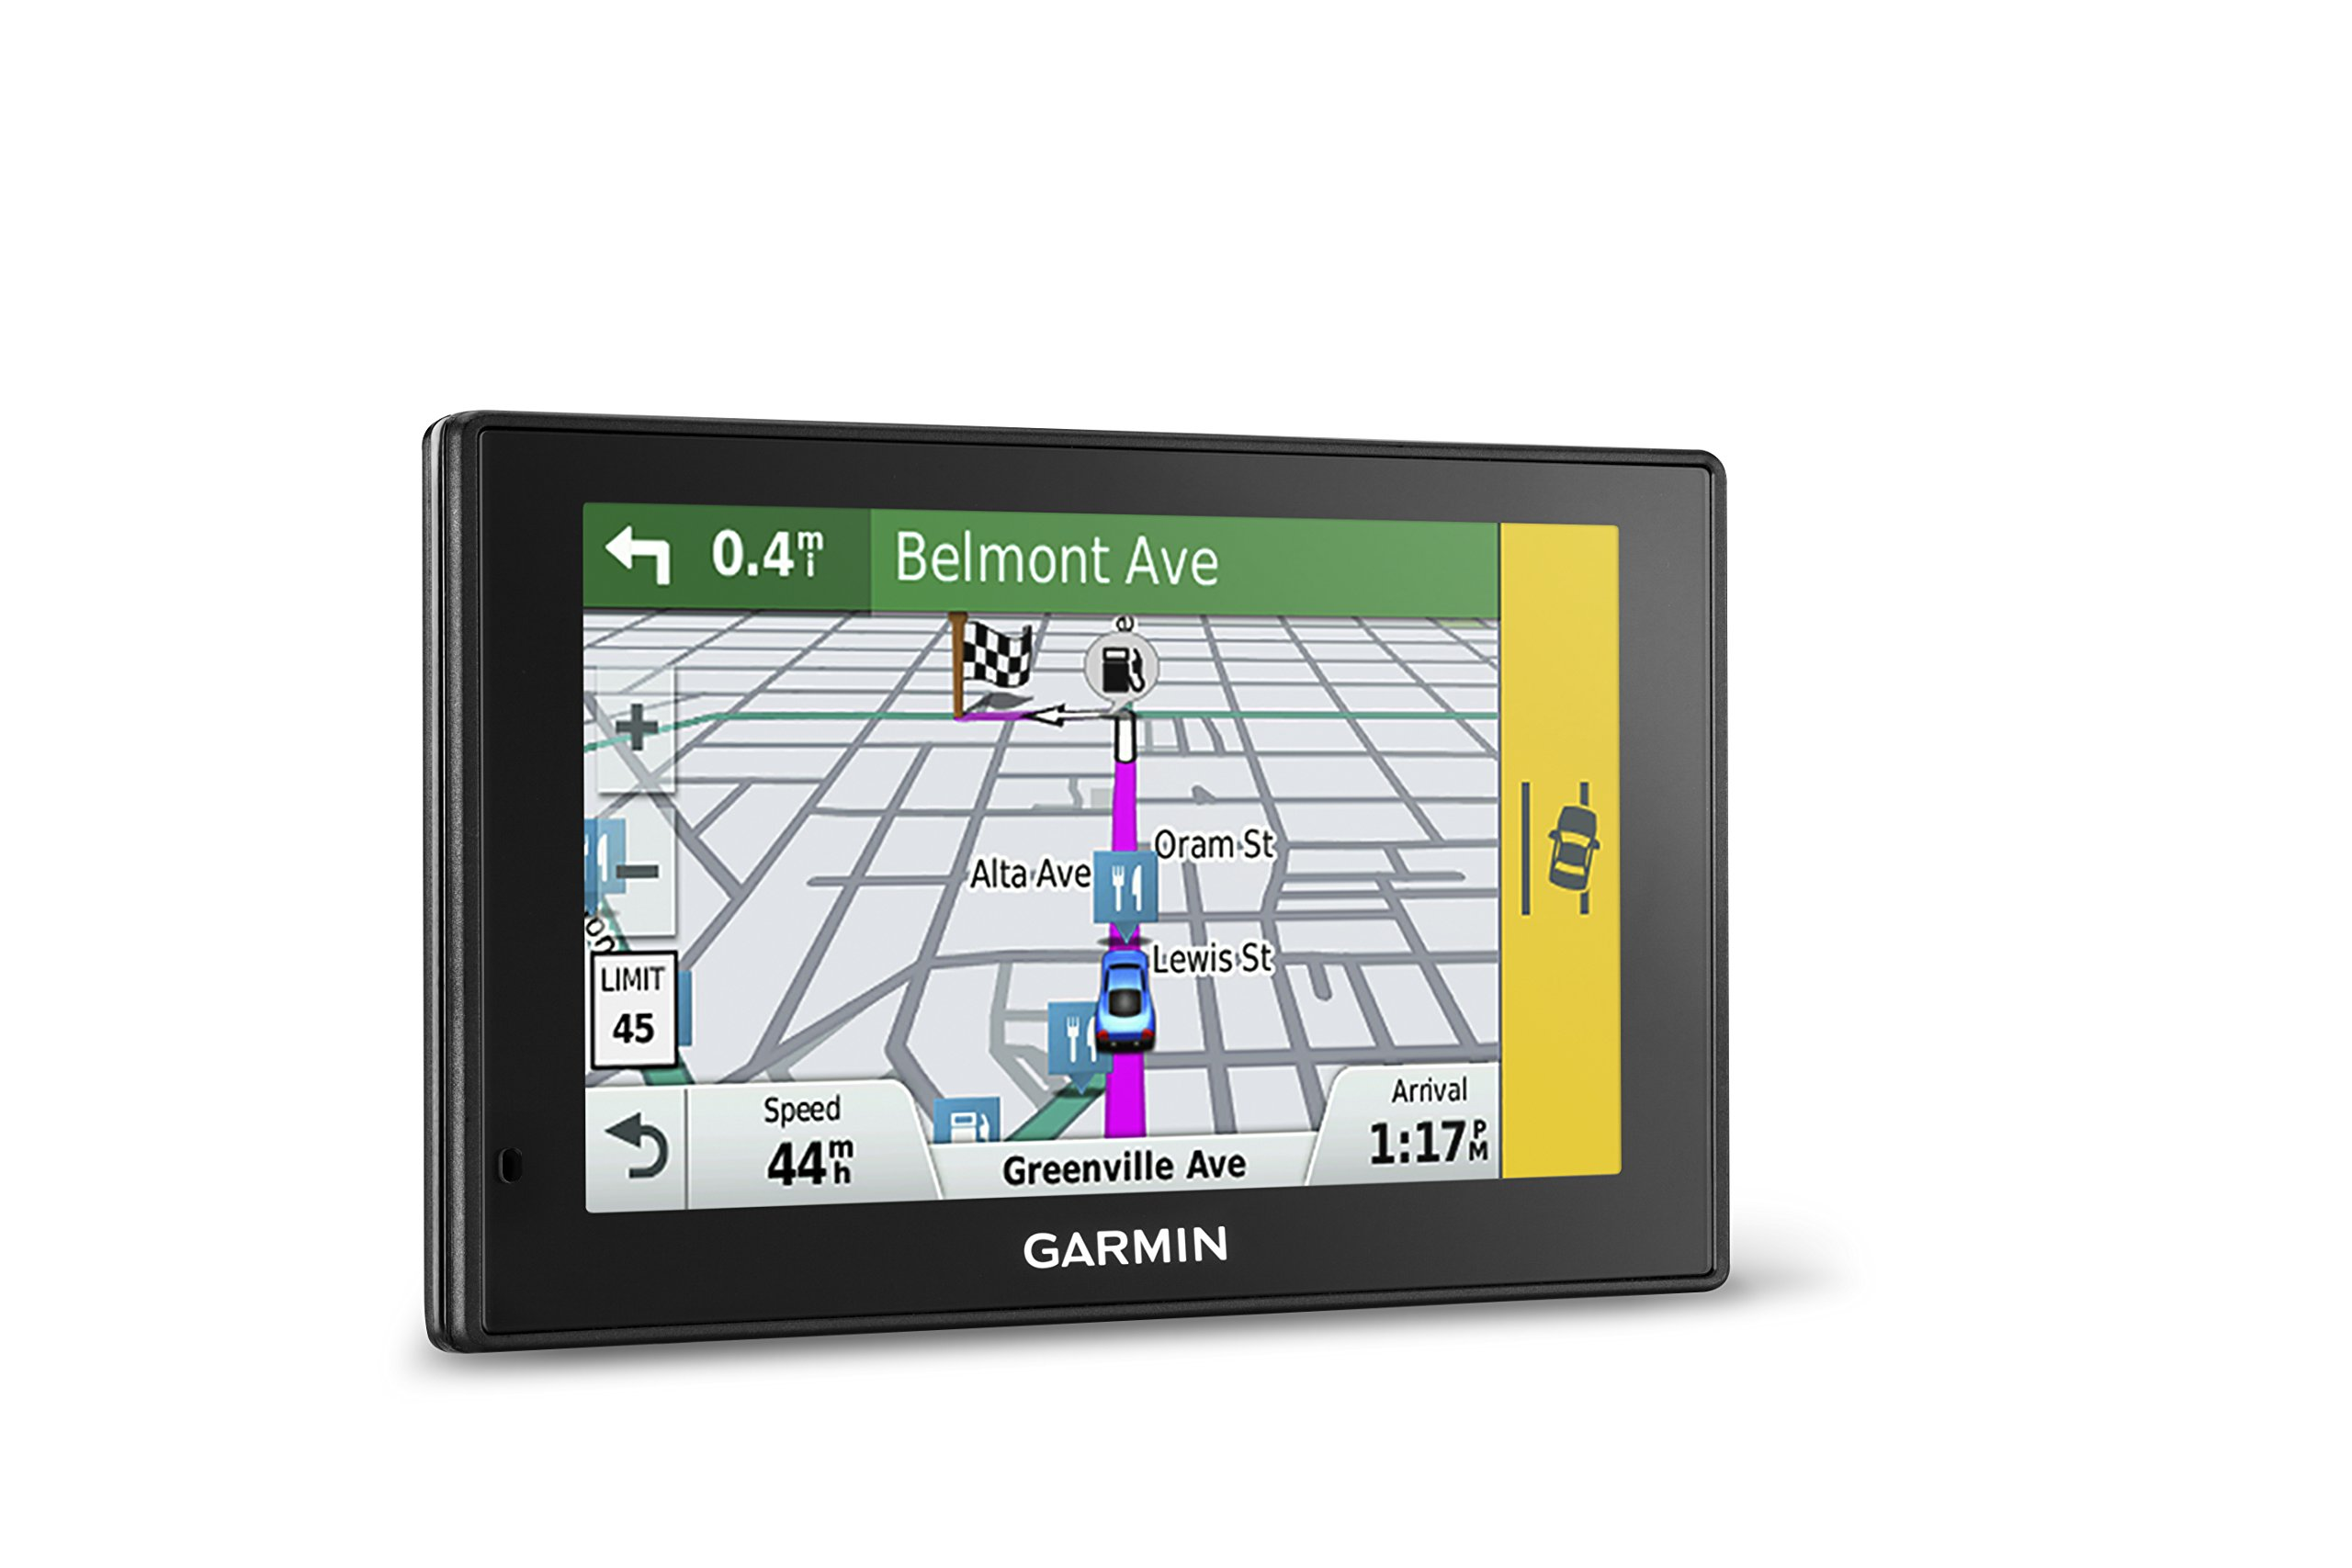 Garmin DriveAssist 51 NA LMT-S w/Lifetime Maps/Traffic, Dash Cam, Camera-assisted Alerts, Lifetime Maps/Traffic,Live Parking, Smart Notifications, Voice Activation by Garmin (Image #2)